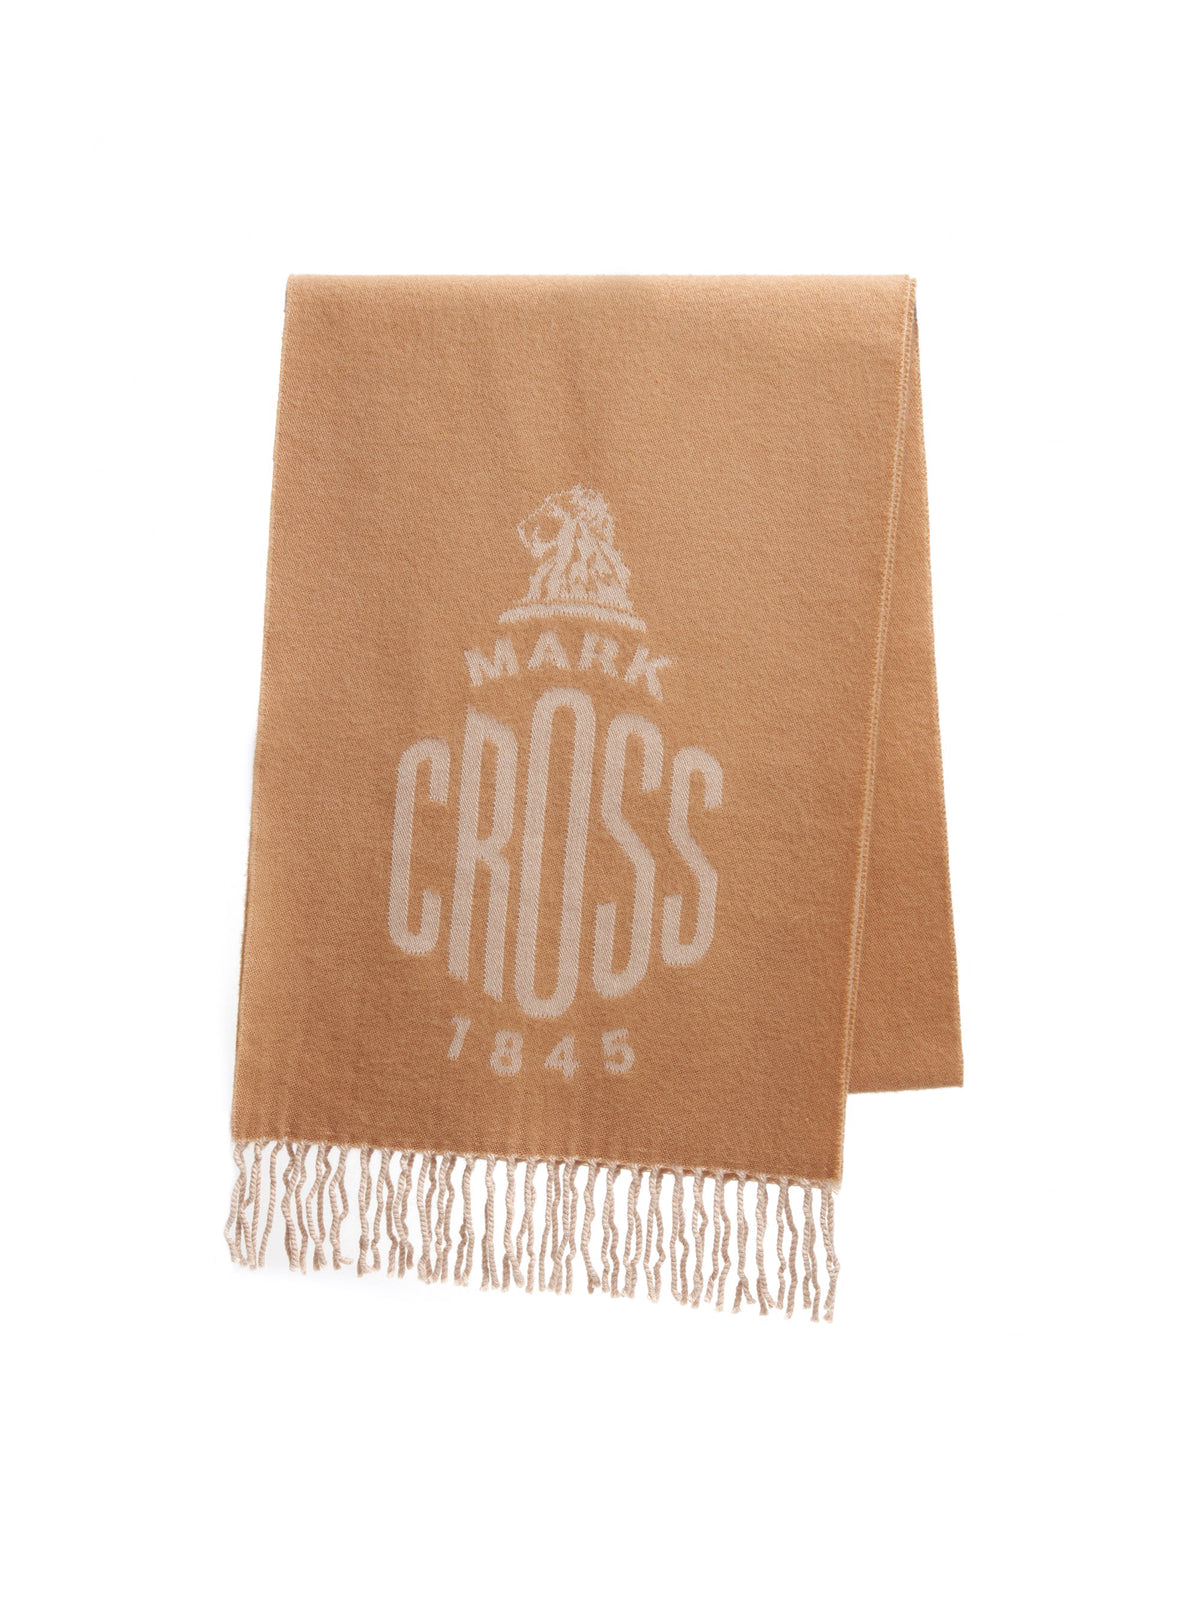 Mark Cross Beacon Wool Scarf Camel / Beige Front